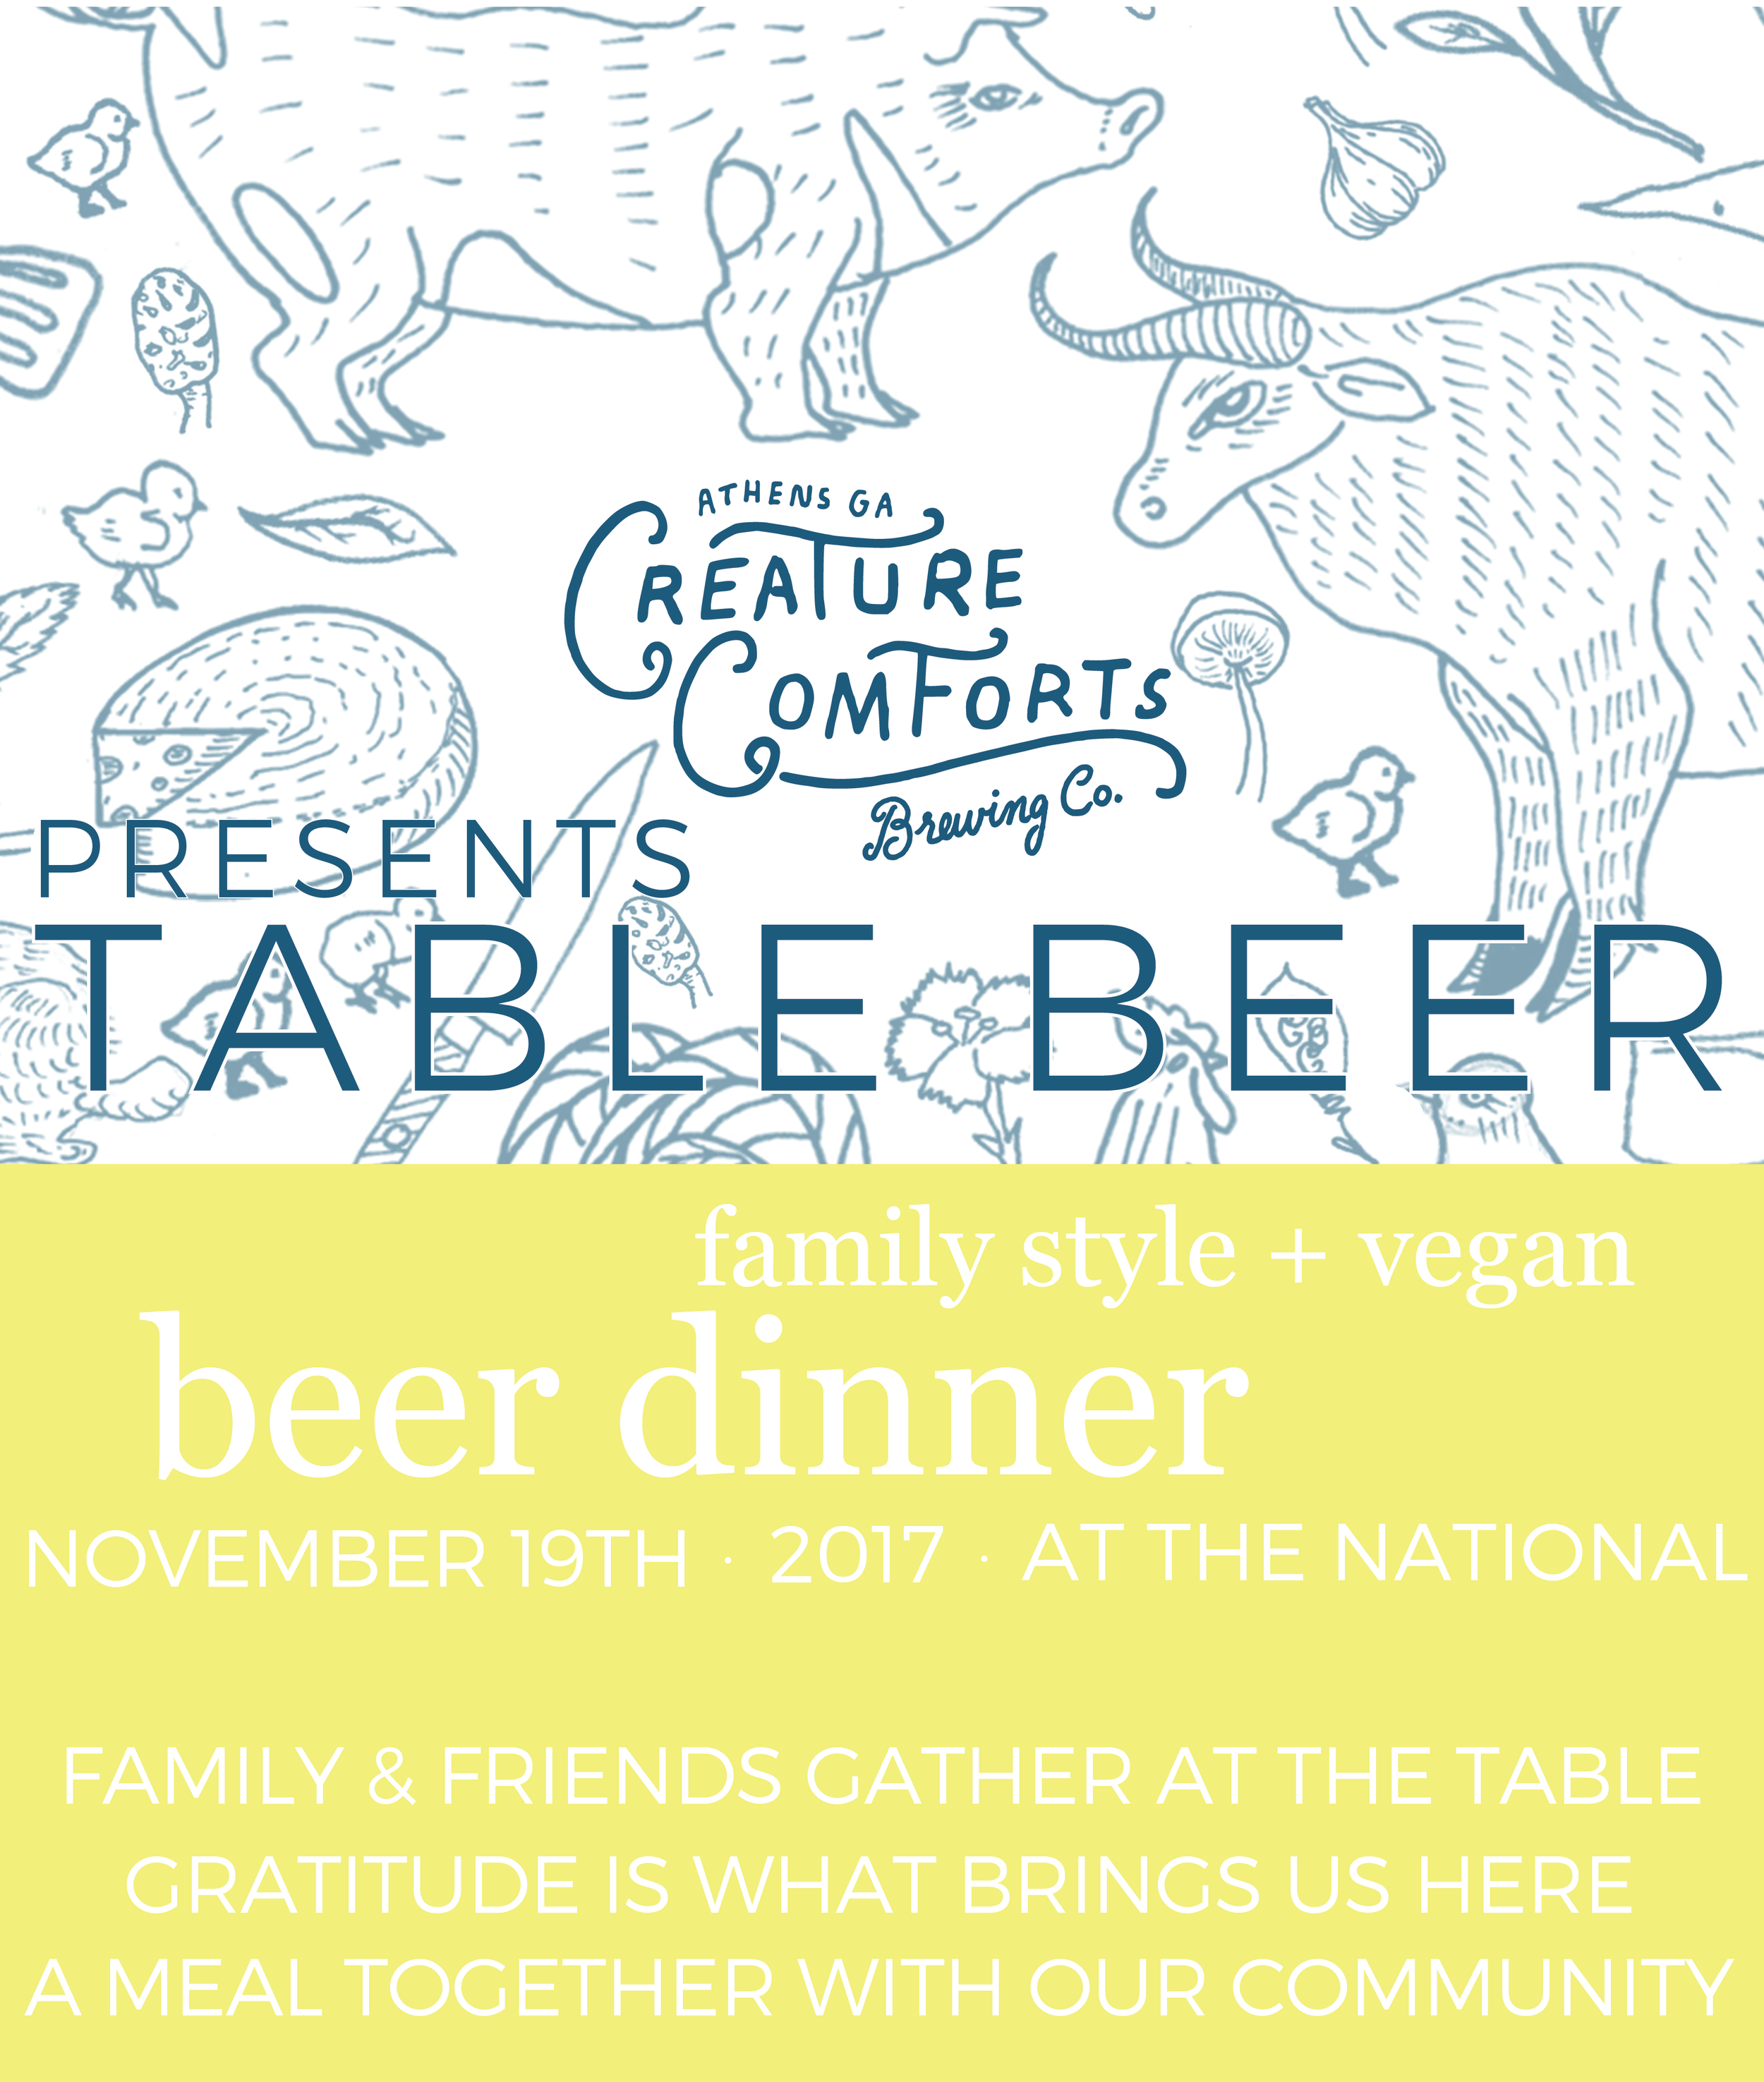 Please join us for a special beer release dinner celebrating the newest addition to the Creature Comforts family, TABLE BEER. Table Beer was created to enjoy with food, friends and family, so on Sunday, November 19 we gather for a family-style beer dinner here at The National. As food is passed around large communal tables and beer poured for one another, we can be grateful for all we have in our community.  Tickets are $65 including tax and gratuity; if you haven't purchased a ticket in advance, they will be sold at the door. Please arrive at 6pm for hors d'oeuvres and conversation.